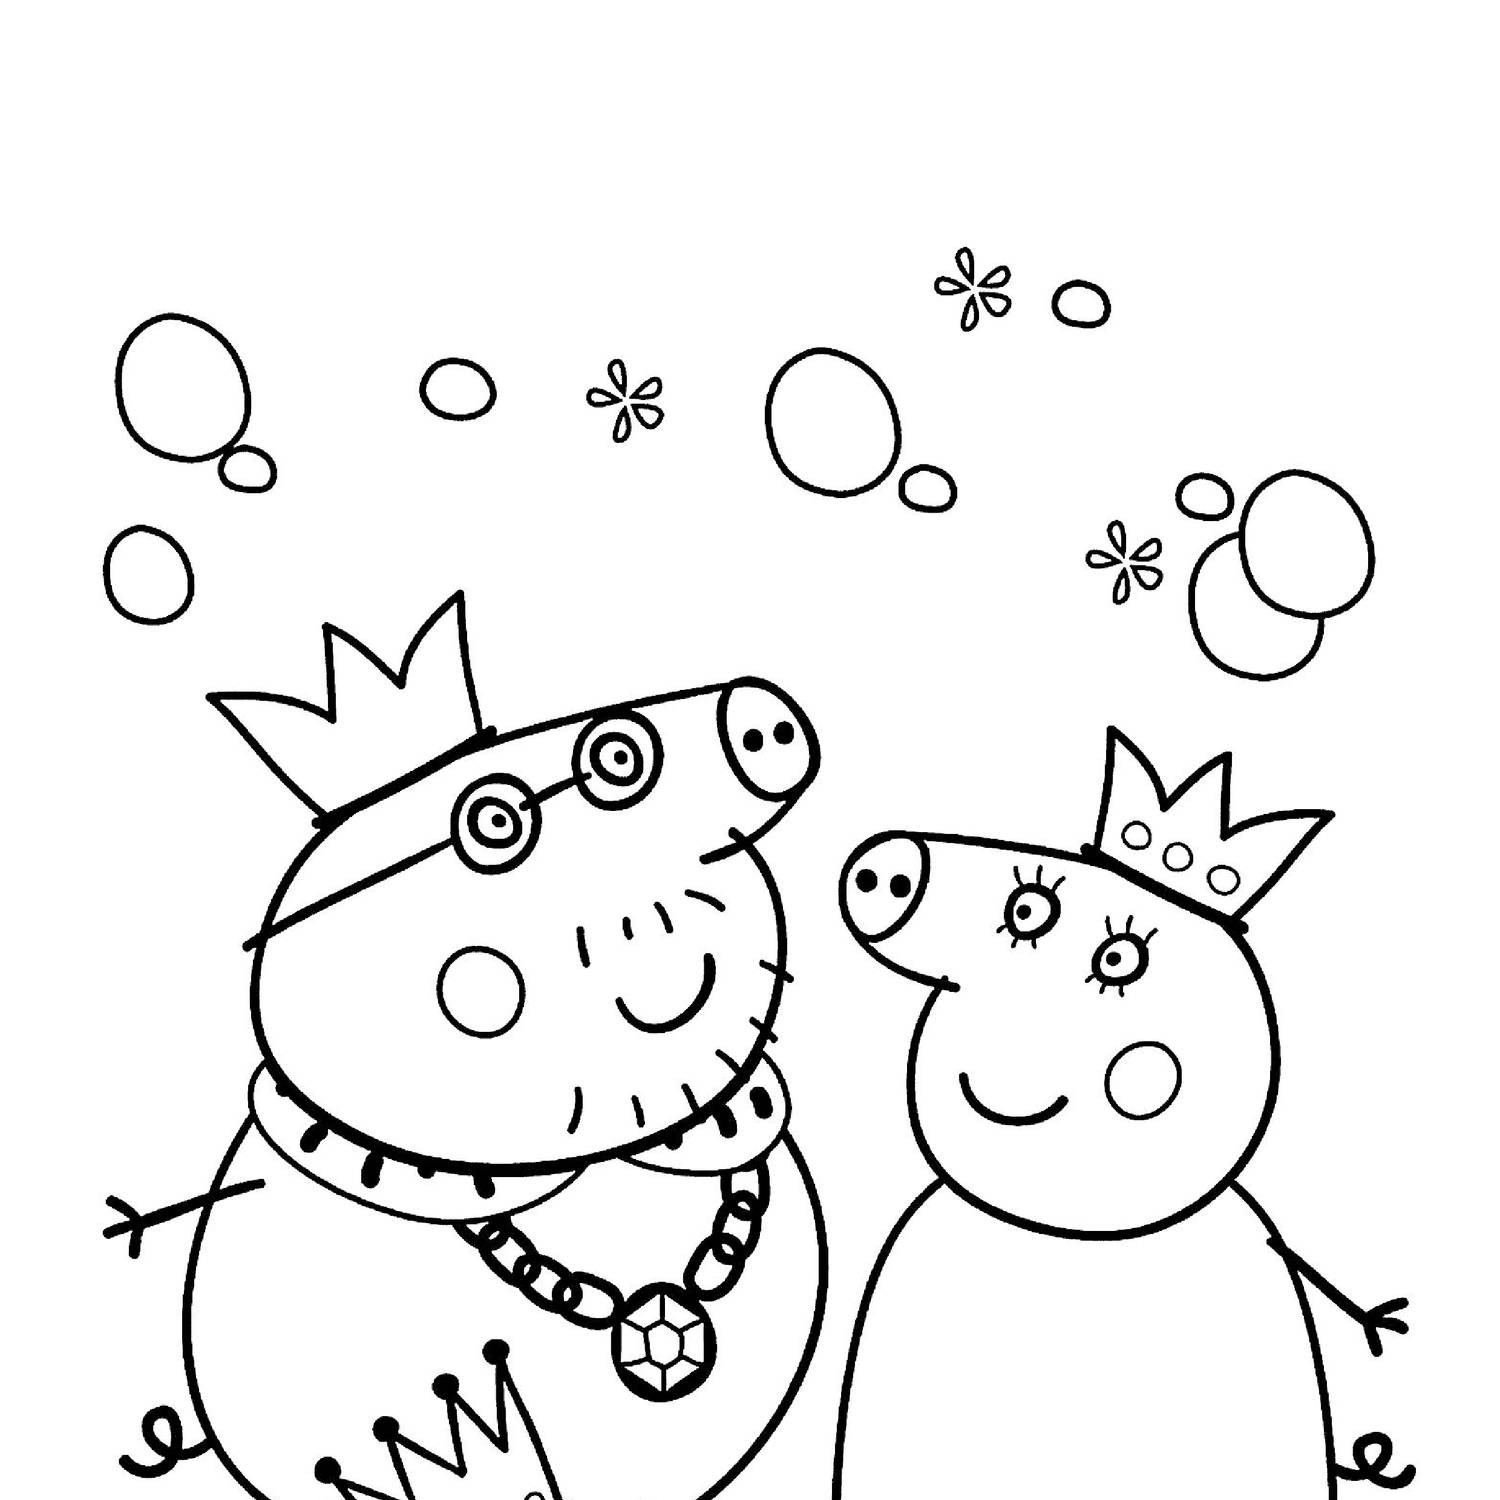 Pepa Pig Coloring Pages.pdf | DocDroid